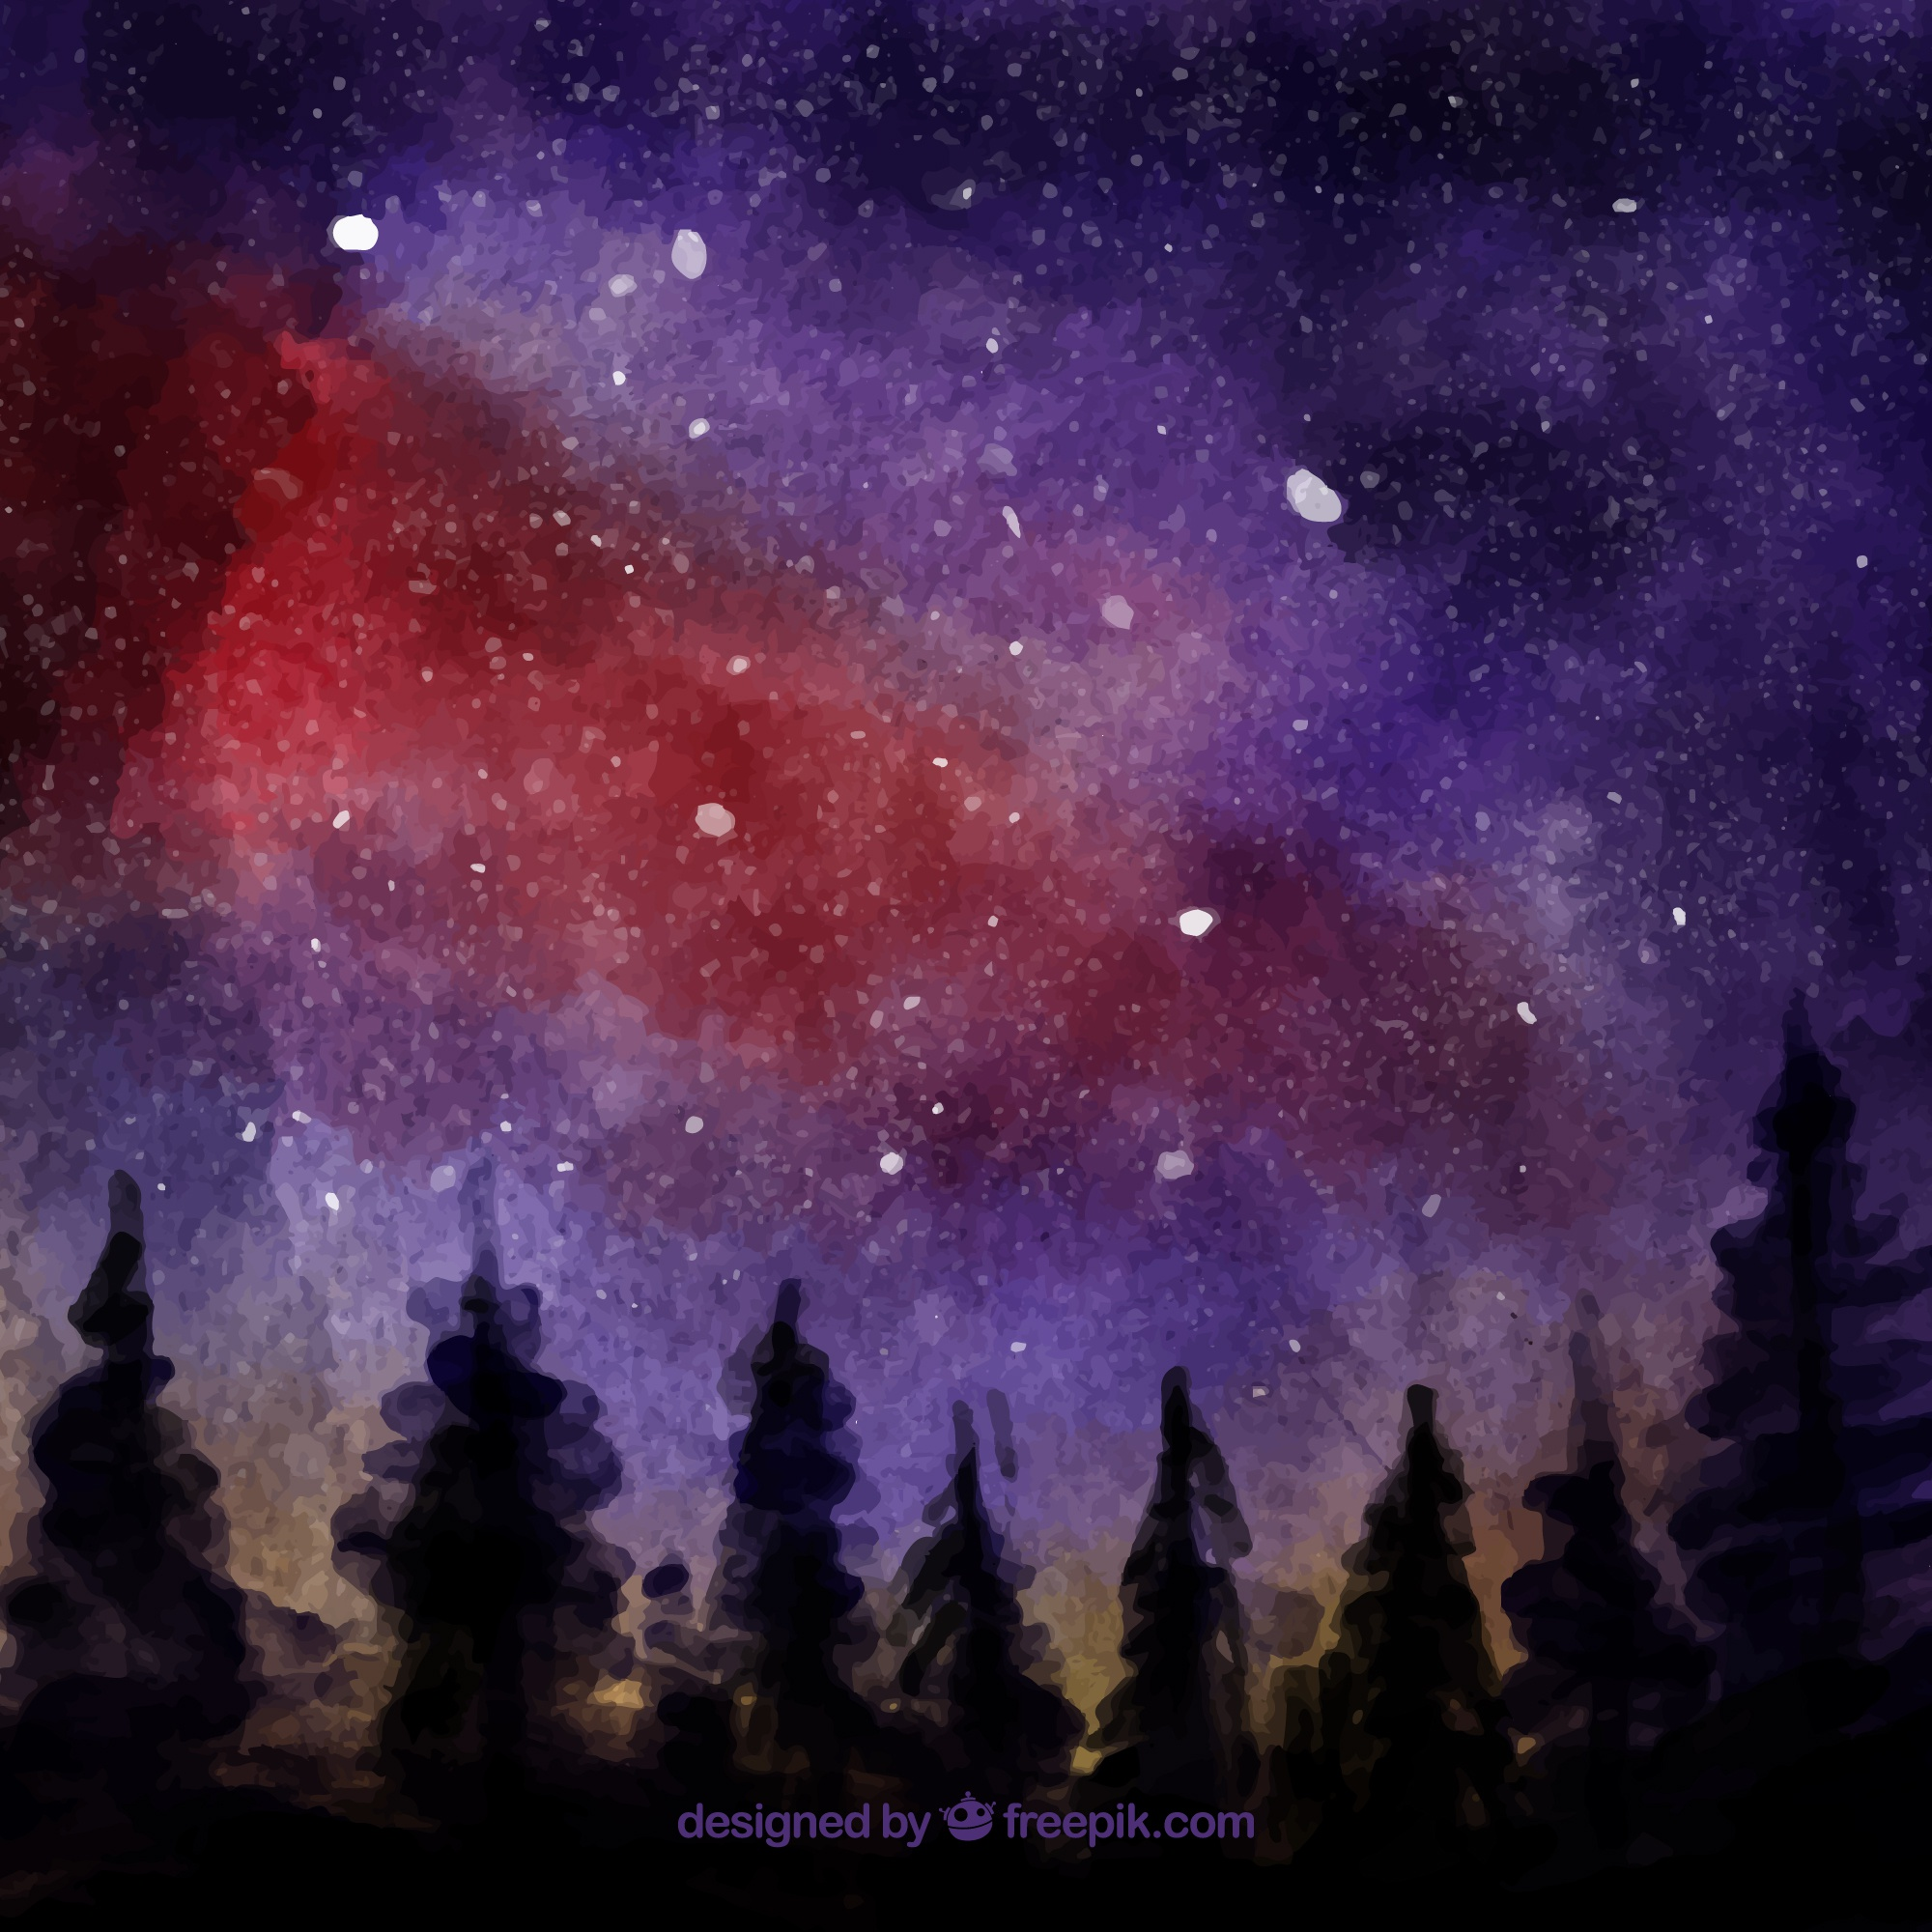 Background of silhouettes of trees with watercolor sky with stars